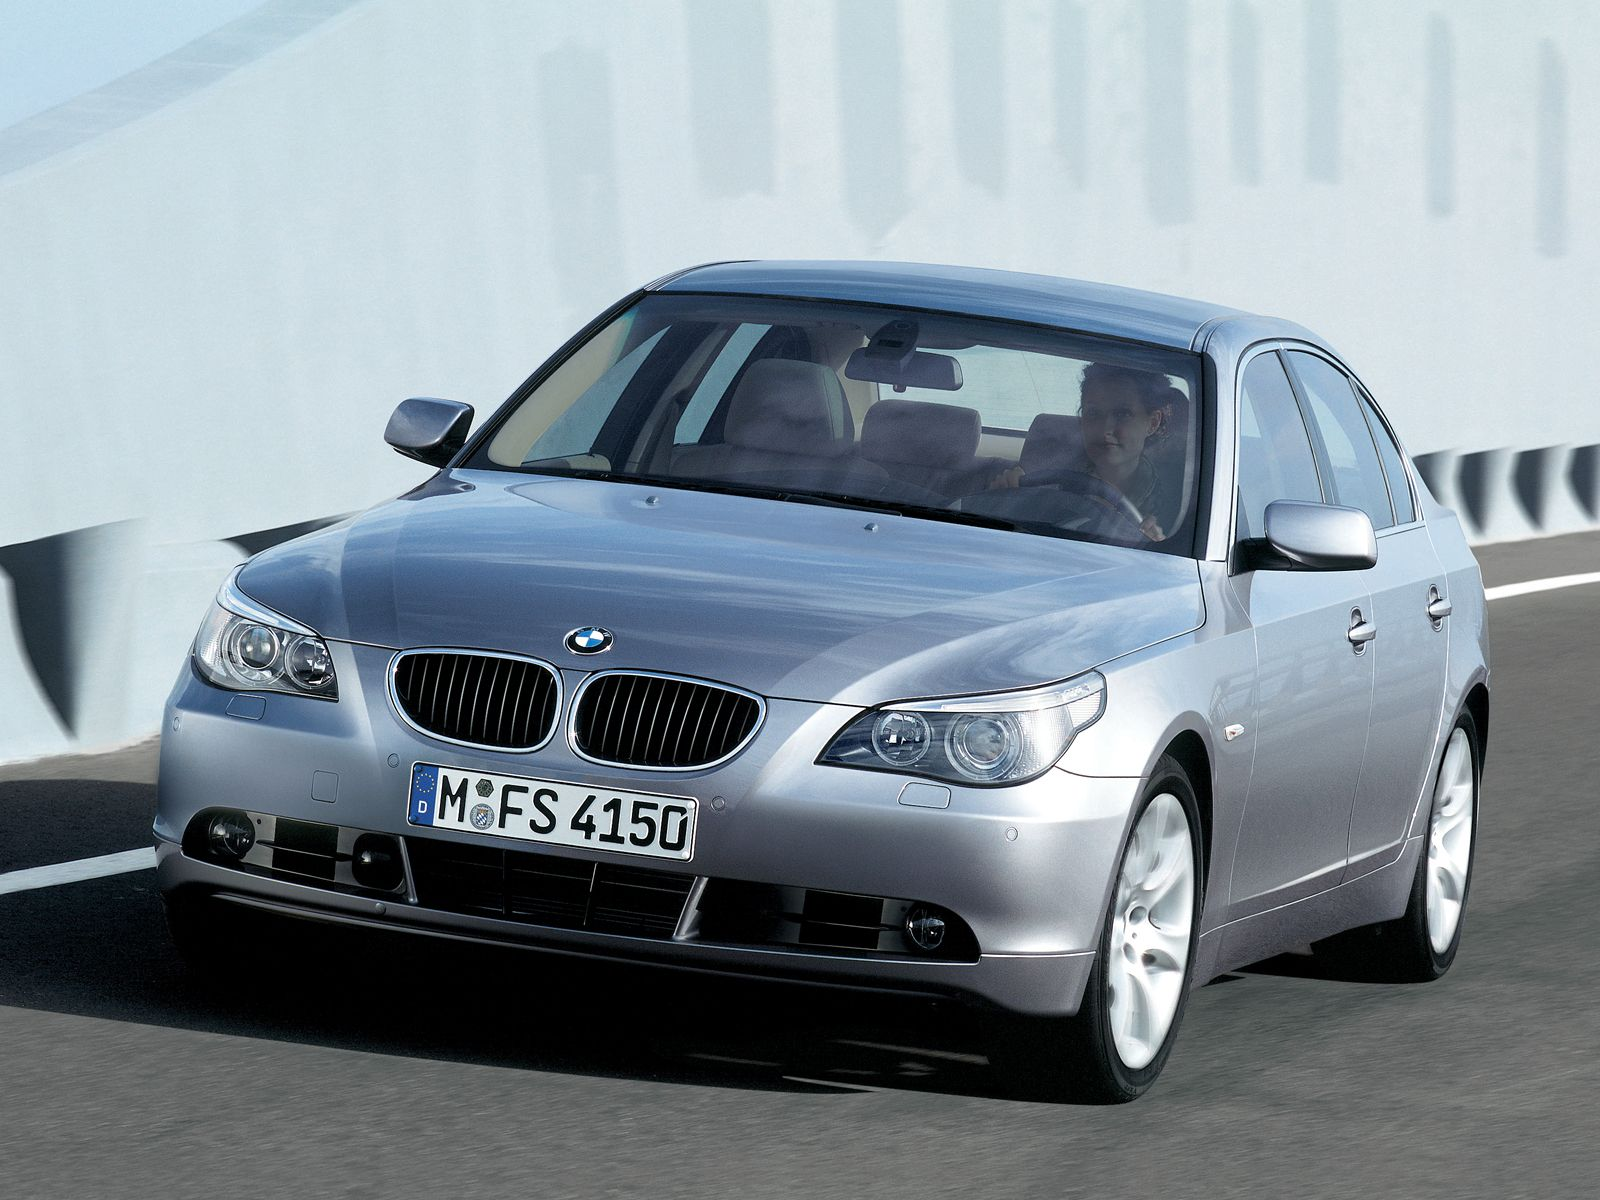 2004 Bmw 5 Series Information And Photos Zombiedrive